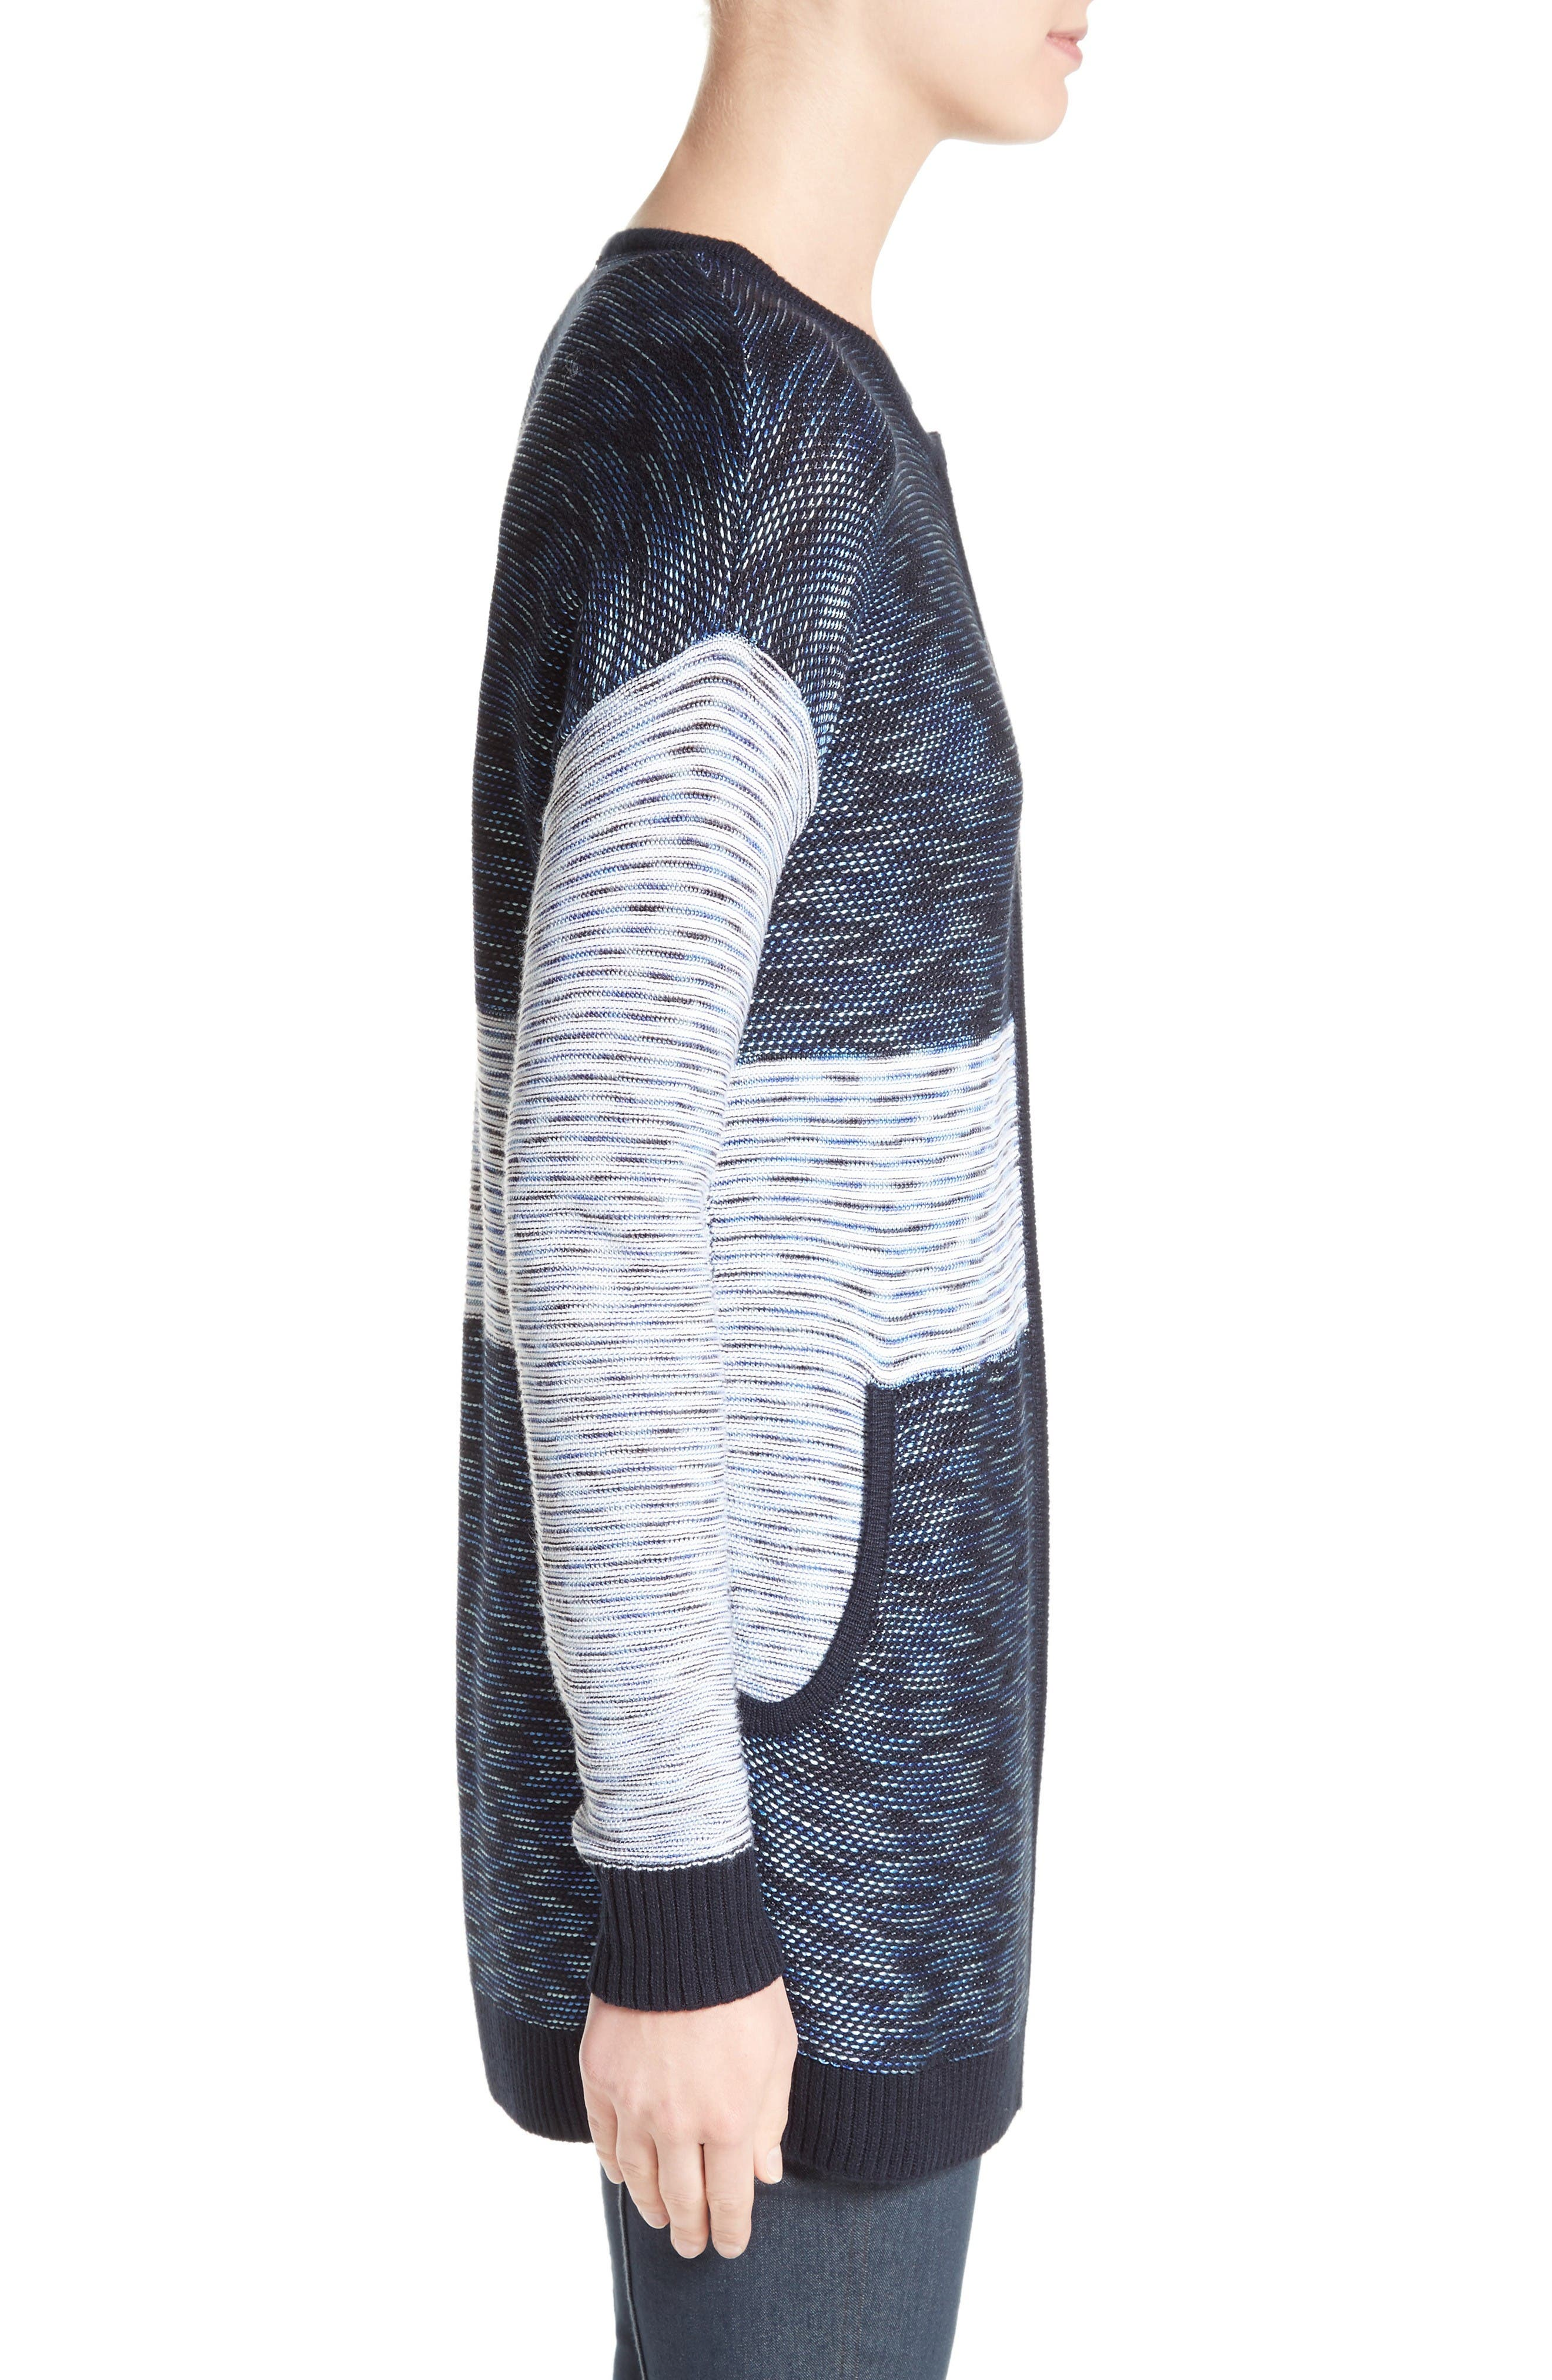 Chambray Effect Links Knit Cardigan,                             Alternate thumbnail 3, color,                             Bianco/ Navy Multi